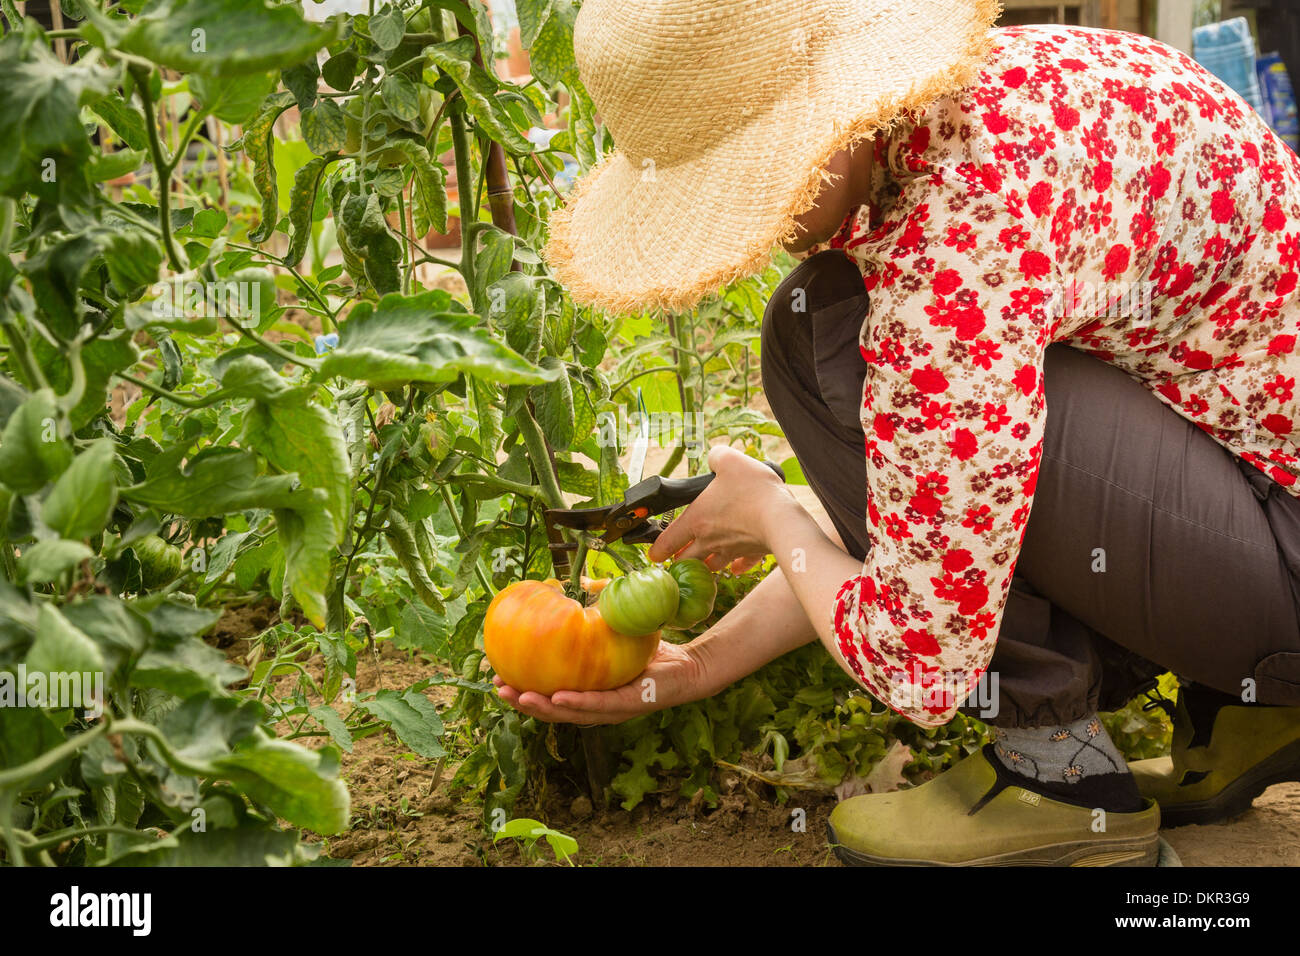 picking of a big tomato // récolte d'une grosse tomate - Stock Image